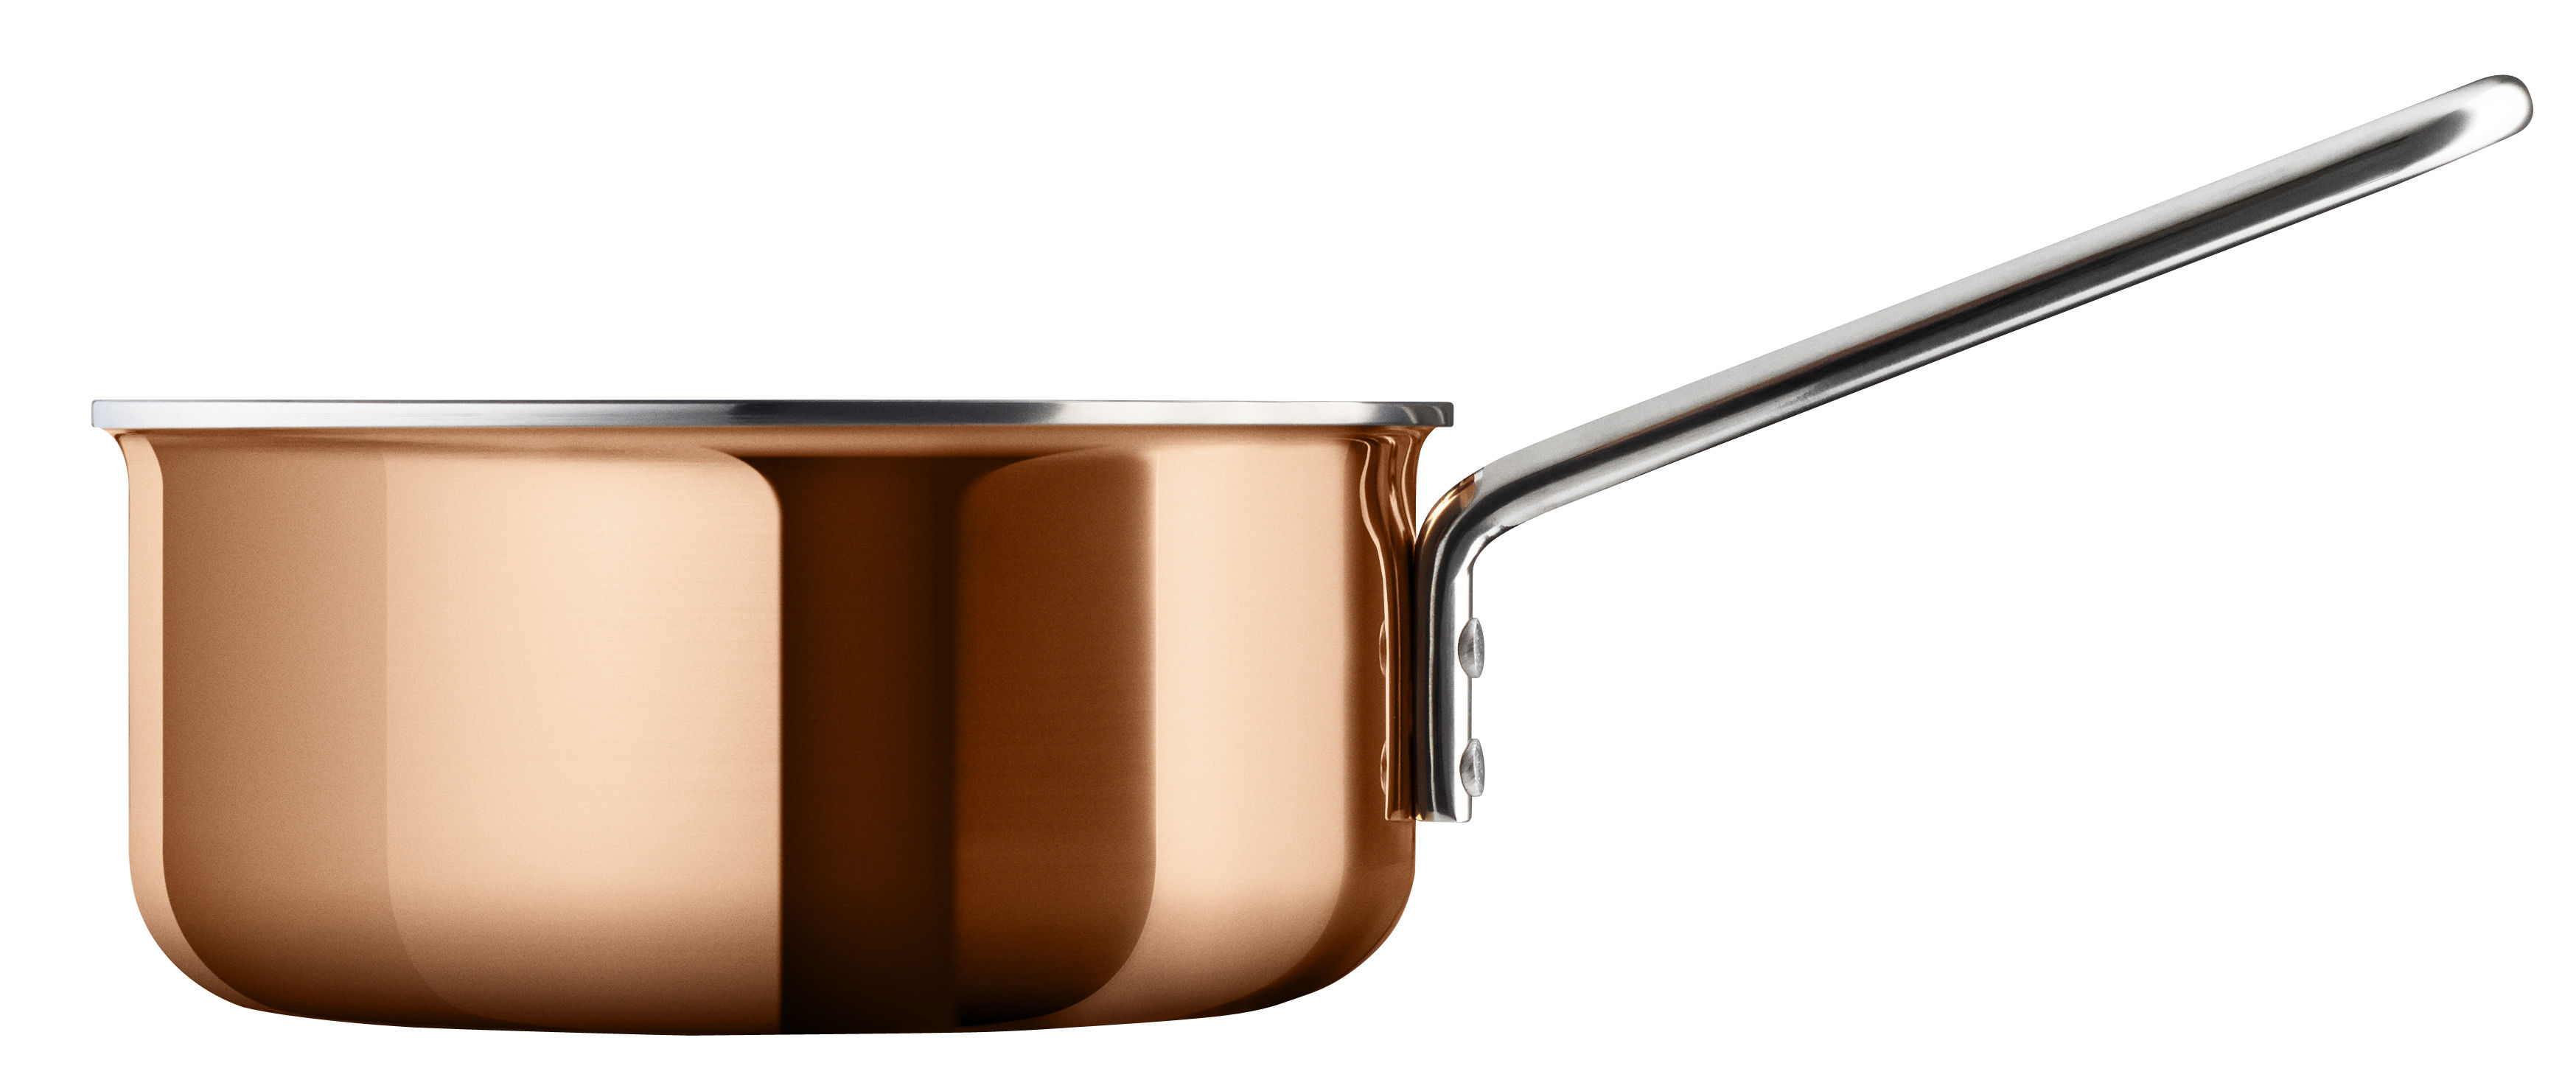 Kitchenware - Pots & Pans - Copper Saucepan - Ø 16 cm - 1,5 L by Eva Trio - Copper - Aluminium, Copper, Steel